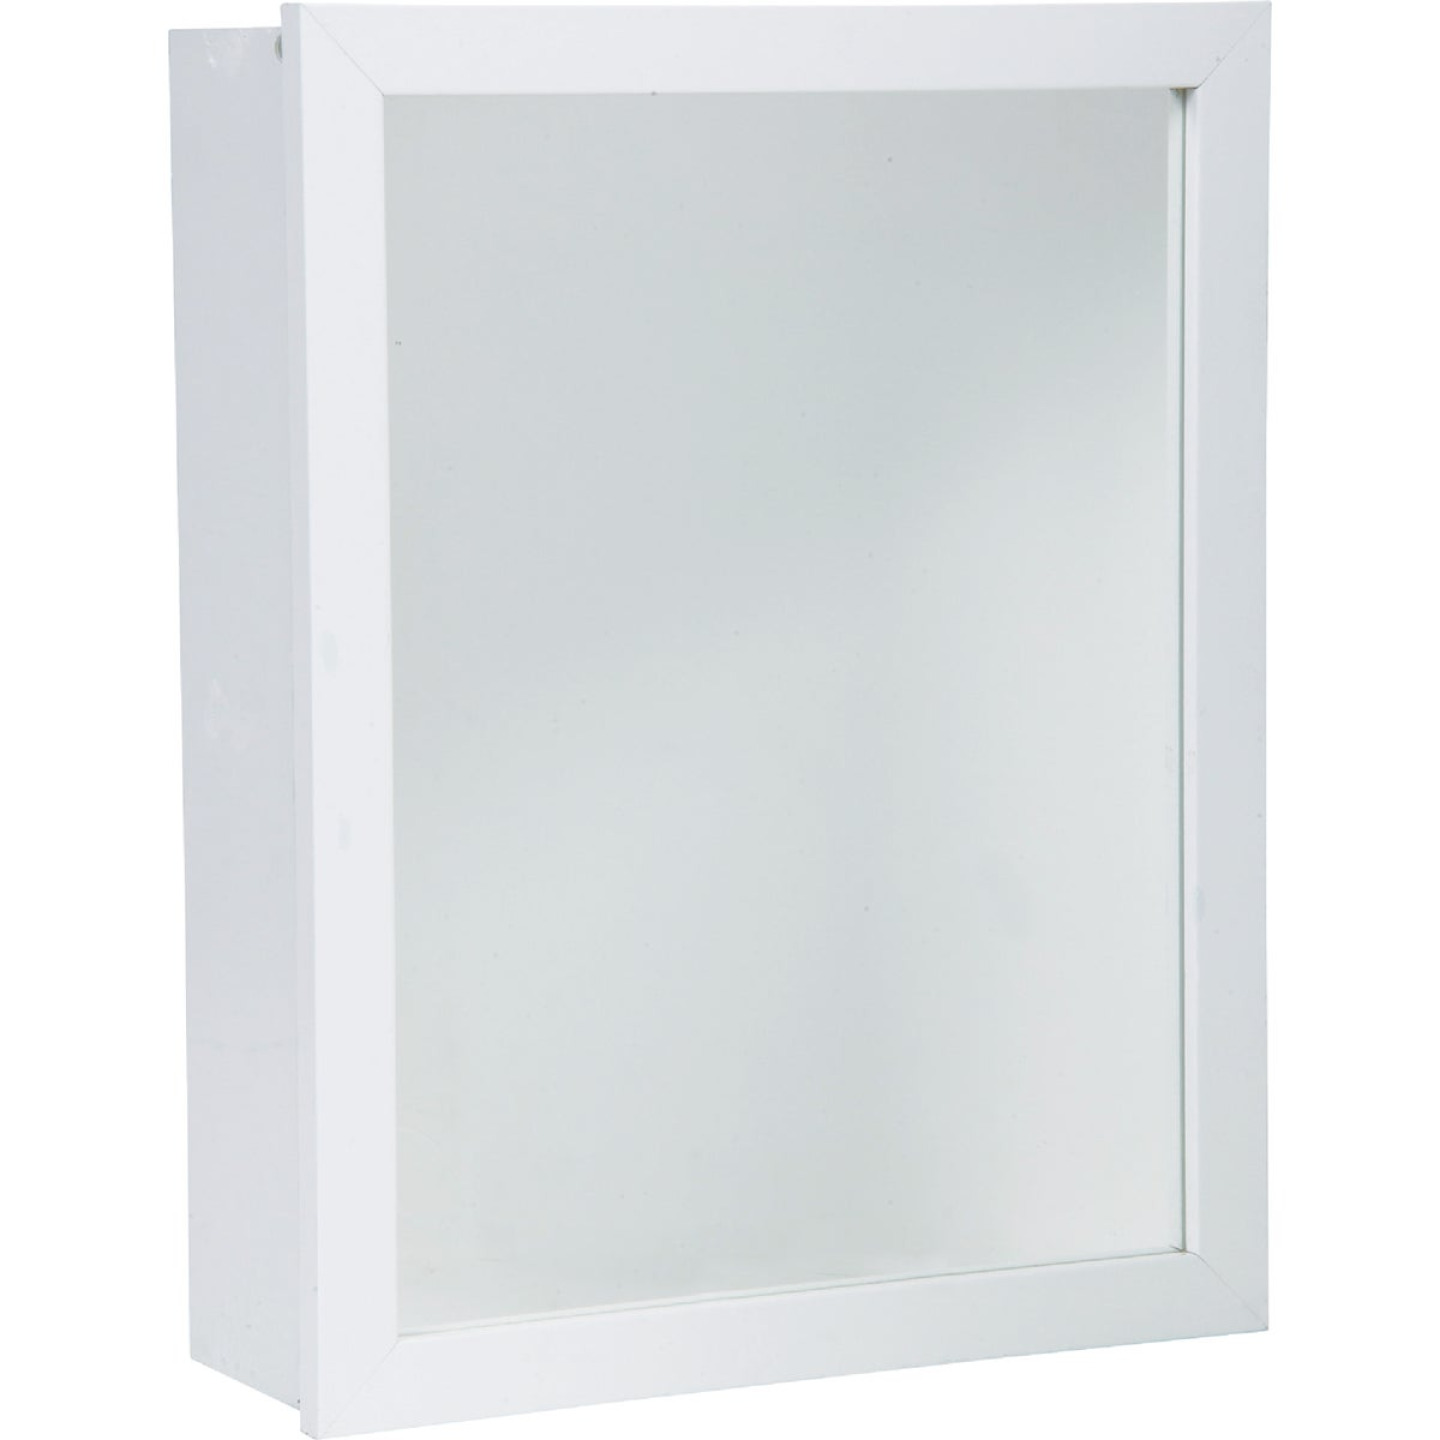 Zenith White 16 In. W x 22 In. H x 5 D Single Mirror Surface/Recess Mount Framed Medicine Cabinet Image 1